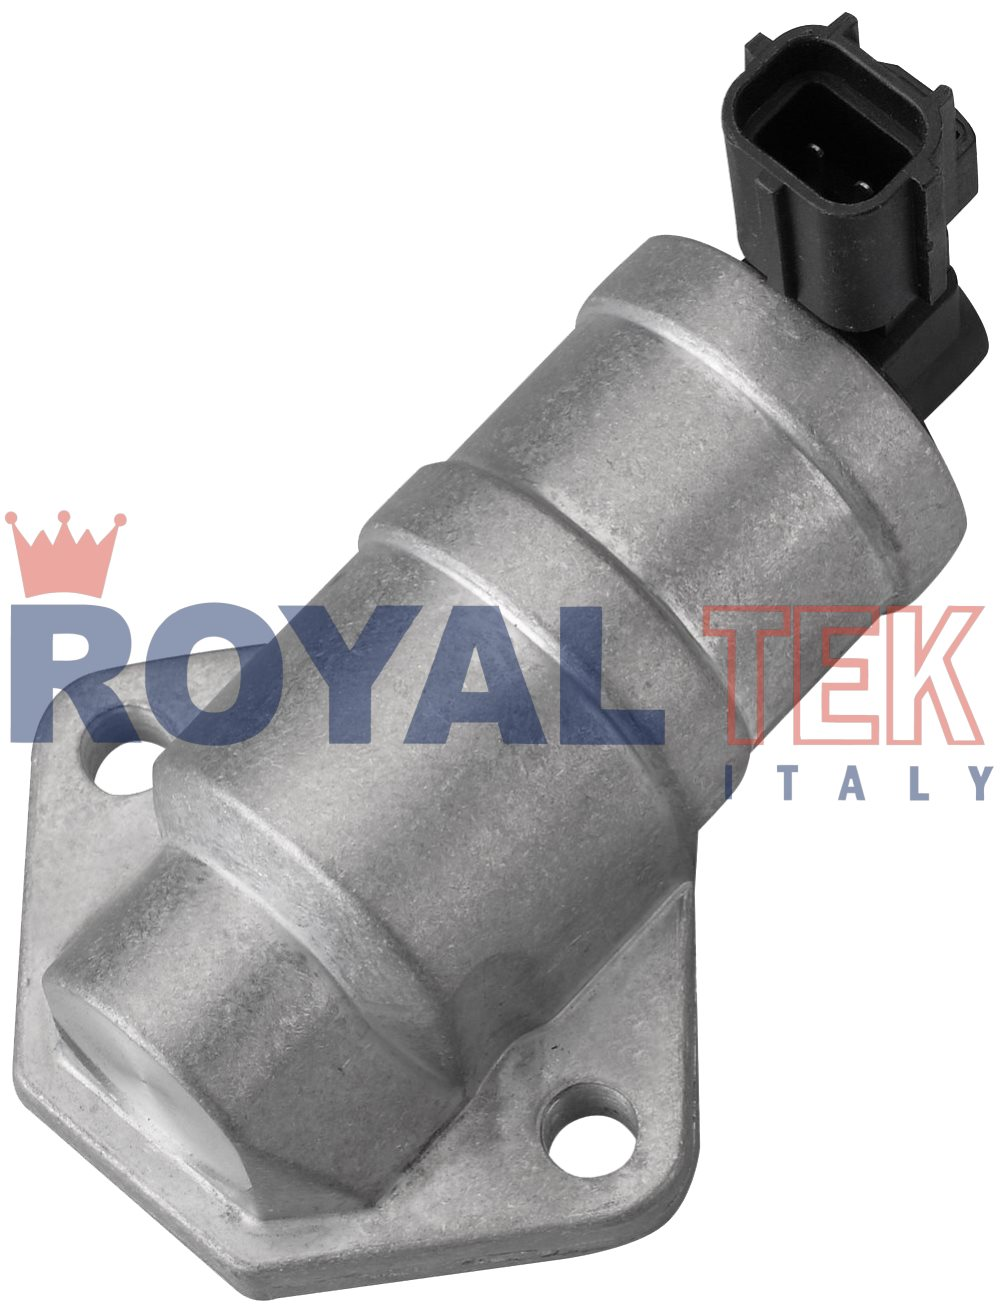 VALVULA PASO A PASO FORD FOCUS 1.8 16V FORD MONDEO 1.8 16V FORD RANGER MAZDA 1.8 --- 1113873 / FORD 1355402 / 1358402 / 14839 / 1S7G97715AE / 1S7G9F715AD / 20LF01660 / MAZDA 6NW009141551